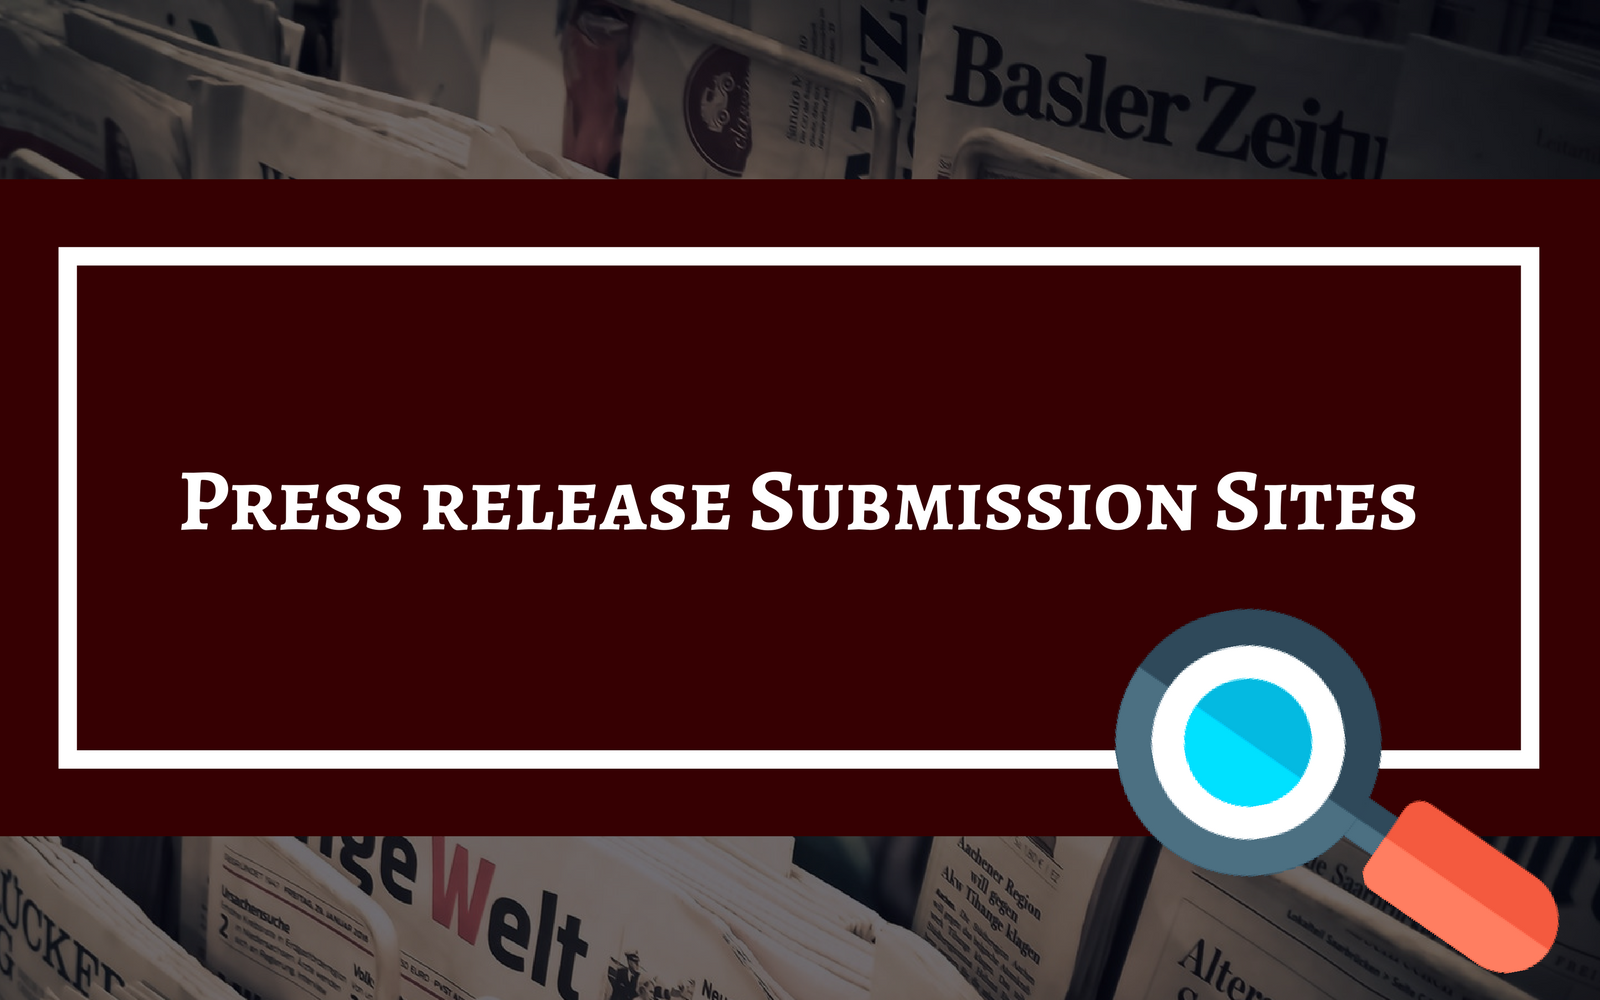 Press Release Submission Sites List Image